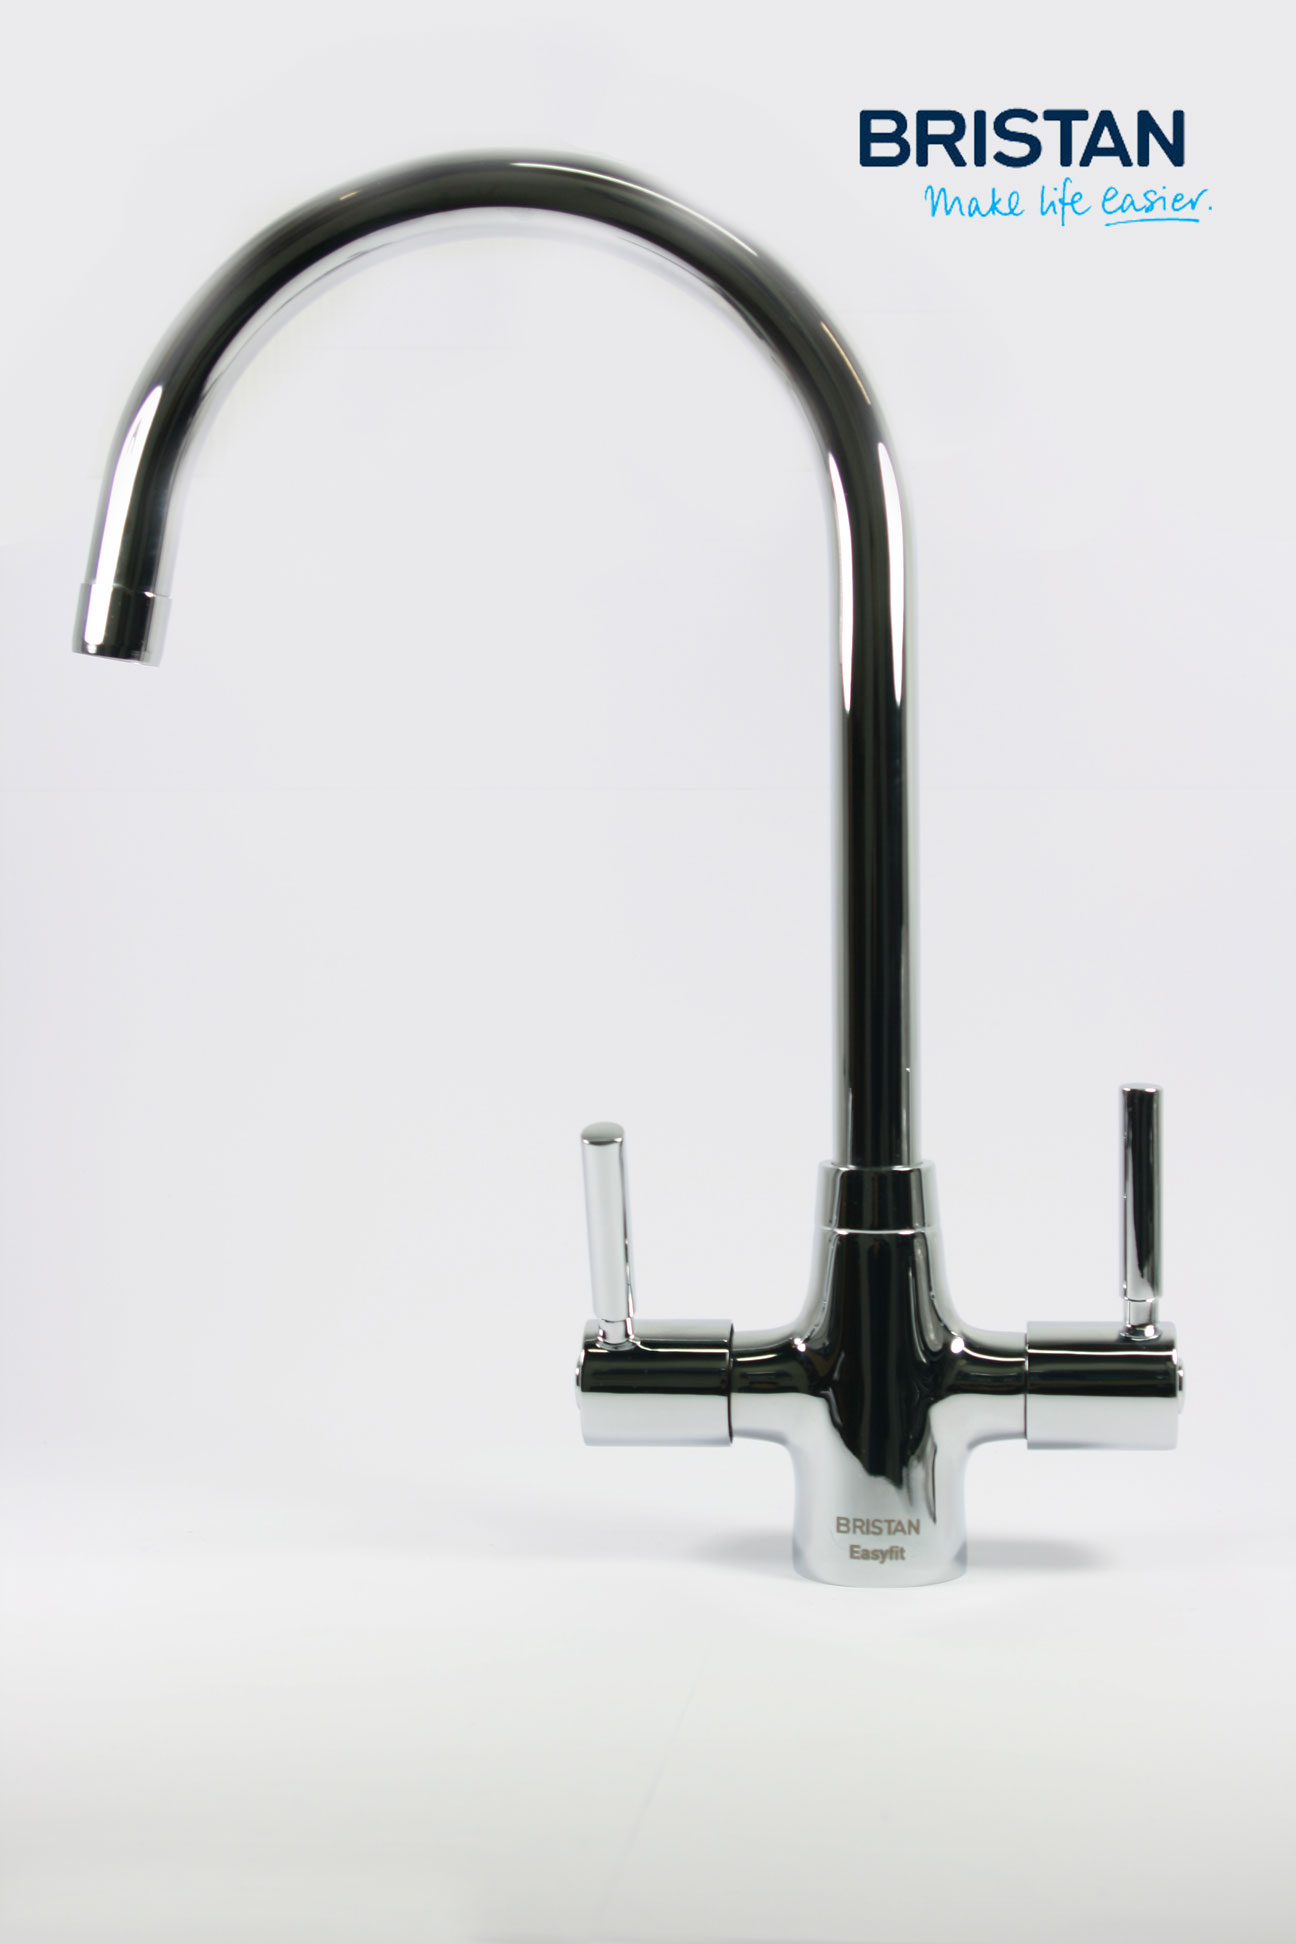 Bristan Monza Kitchen Sink Monobloc Mixer Tap Easy Fit